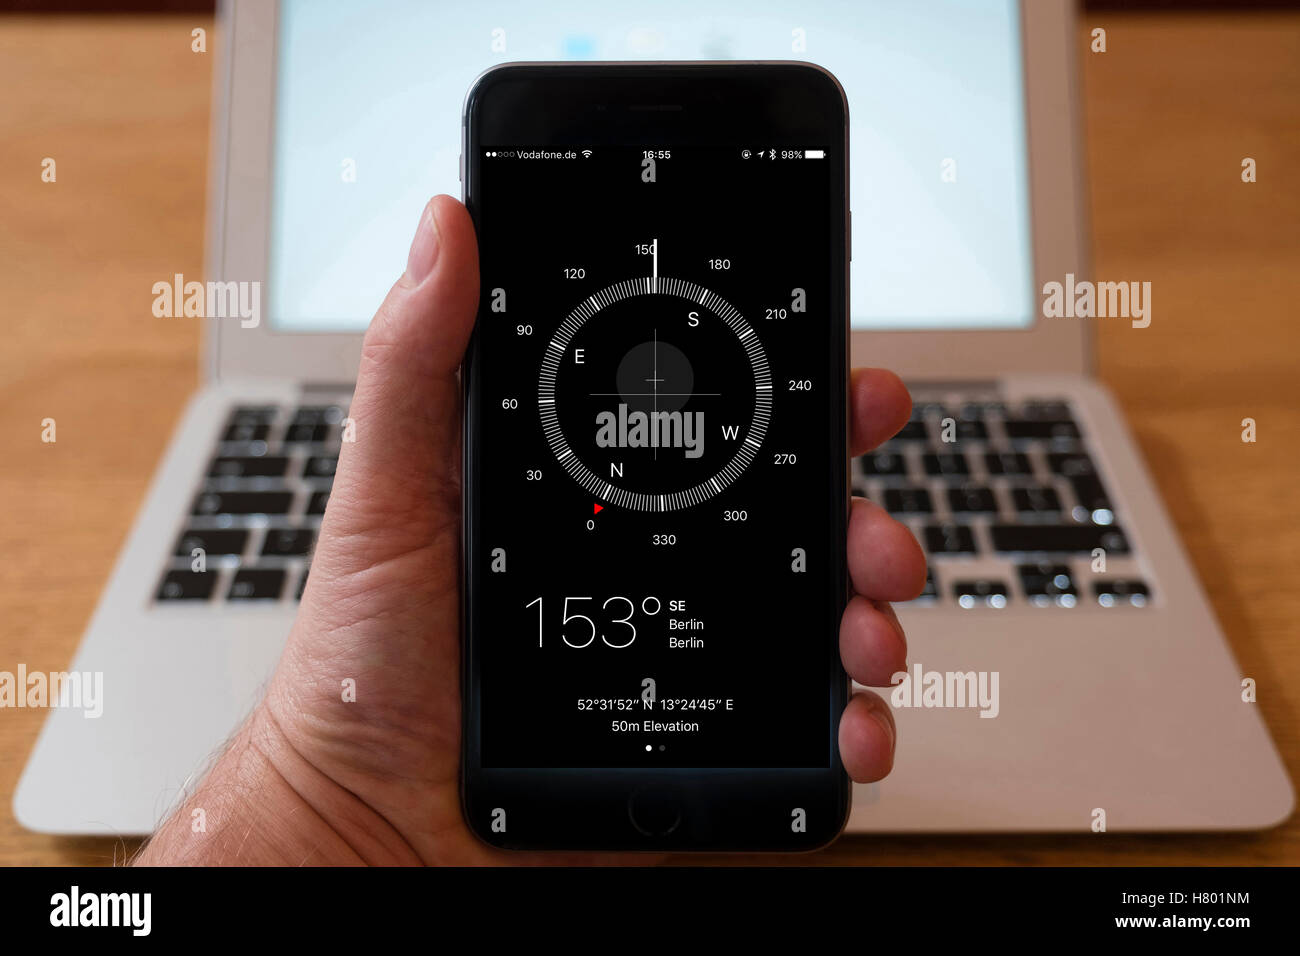 how does iphone compass work using iphone smartphone to display compass app stock photo 17028